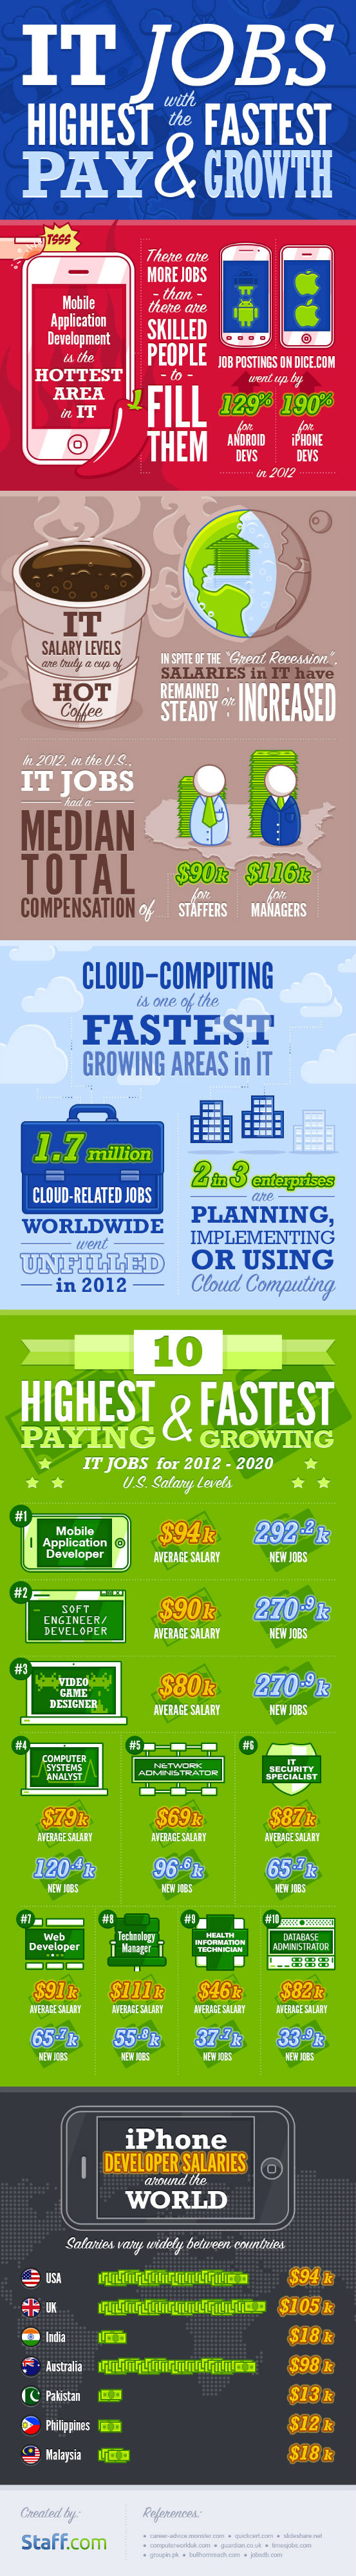 IT Jobs with the Highest Pay and Fastest Growth [Infographic]